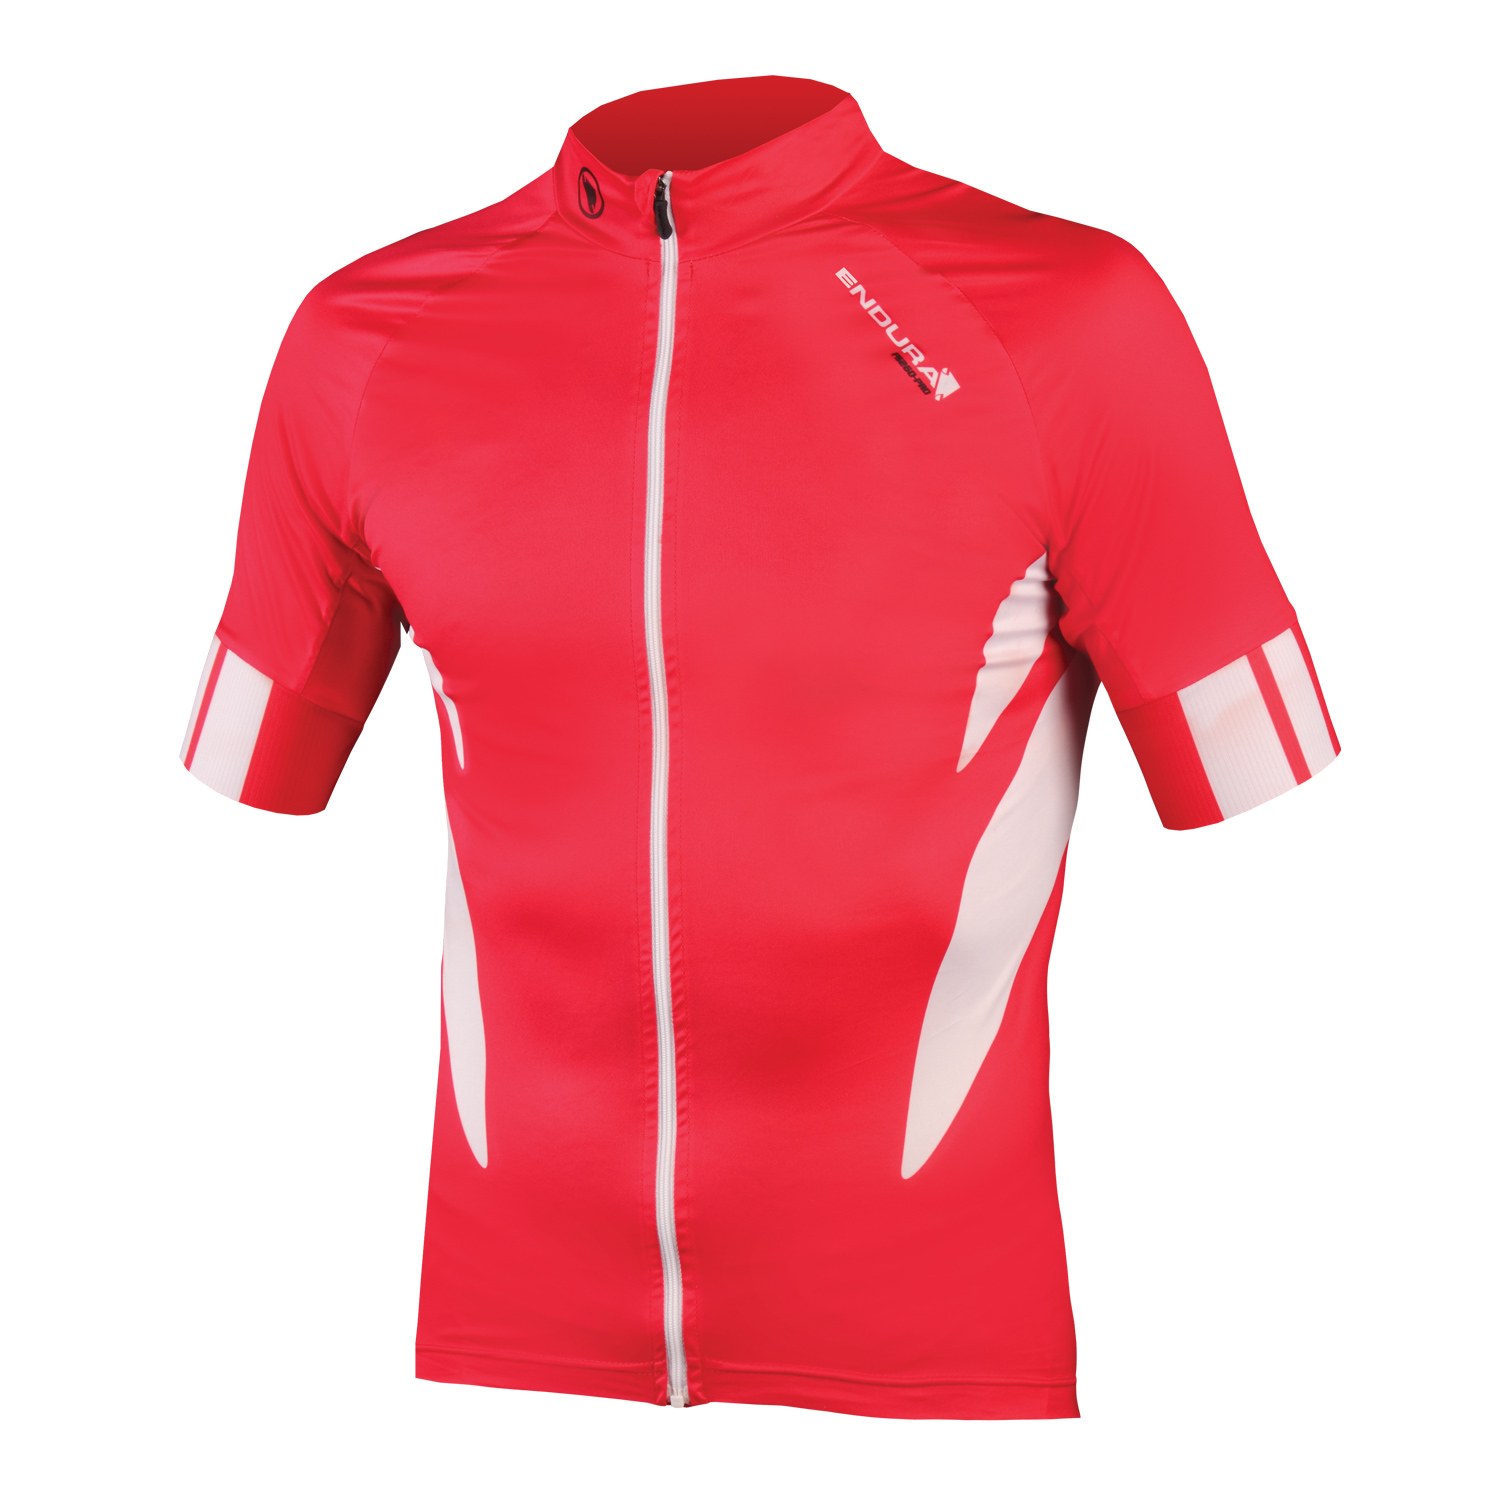 Endura FS260-Pro Jetstream Women's L/S Jersey | Jerseys